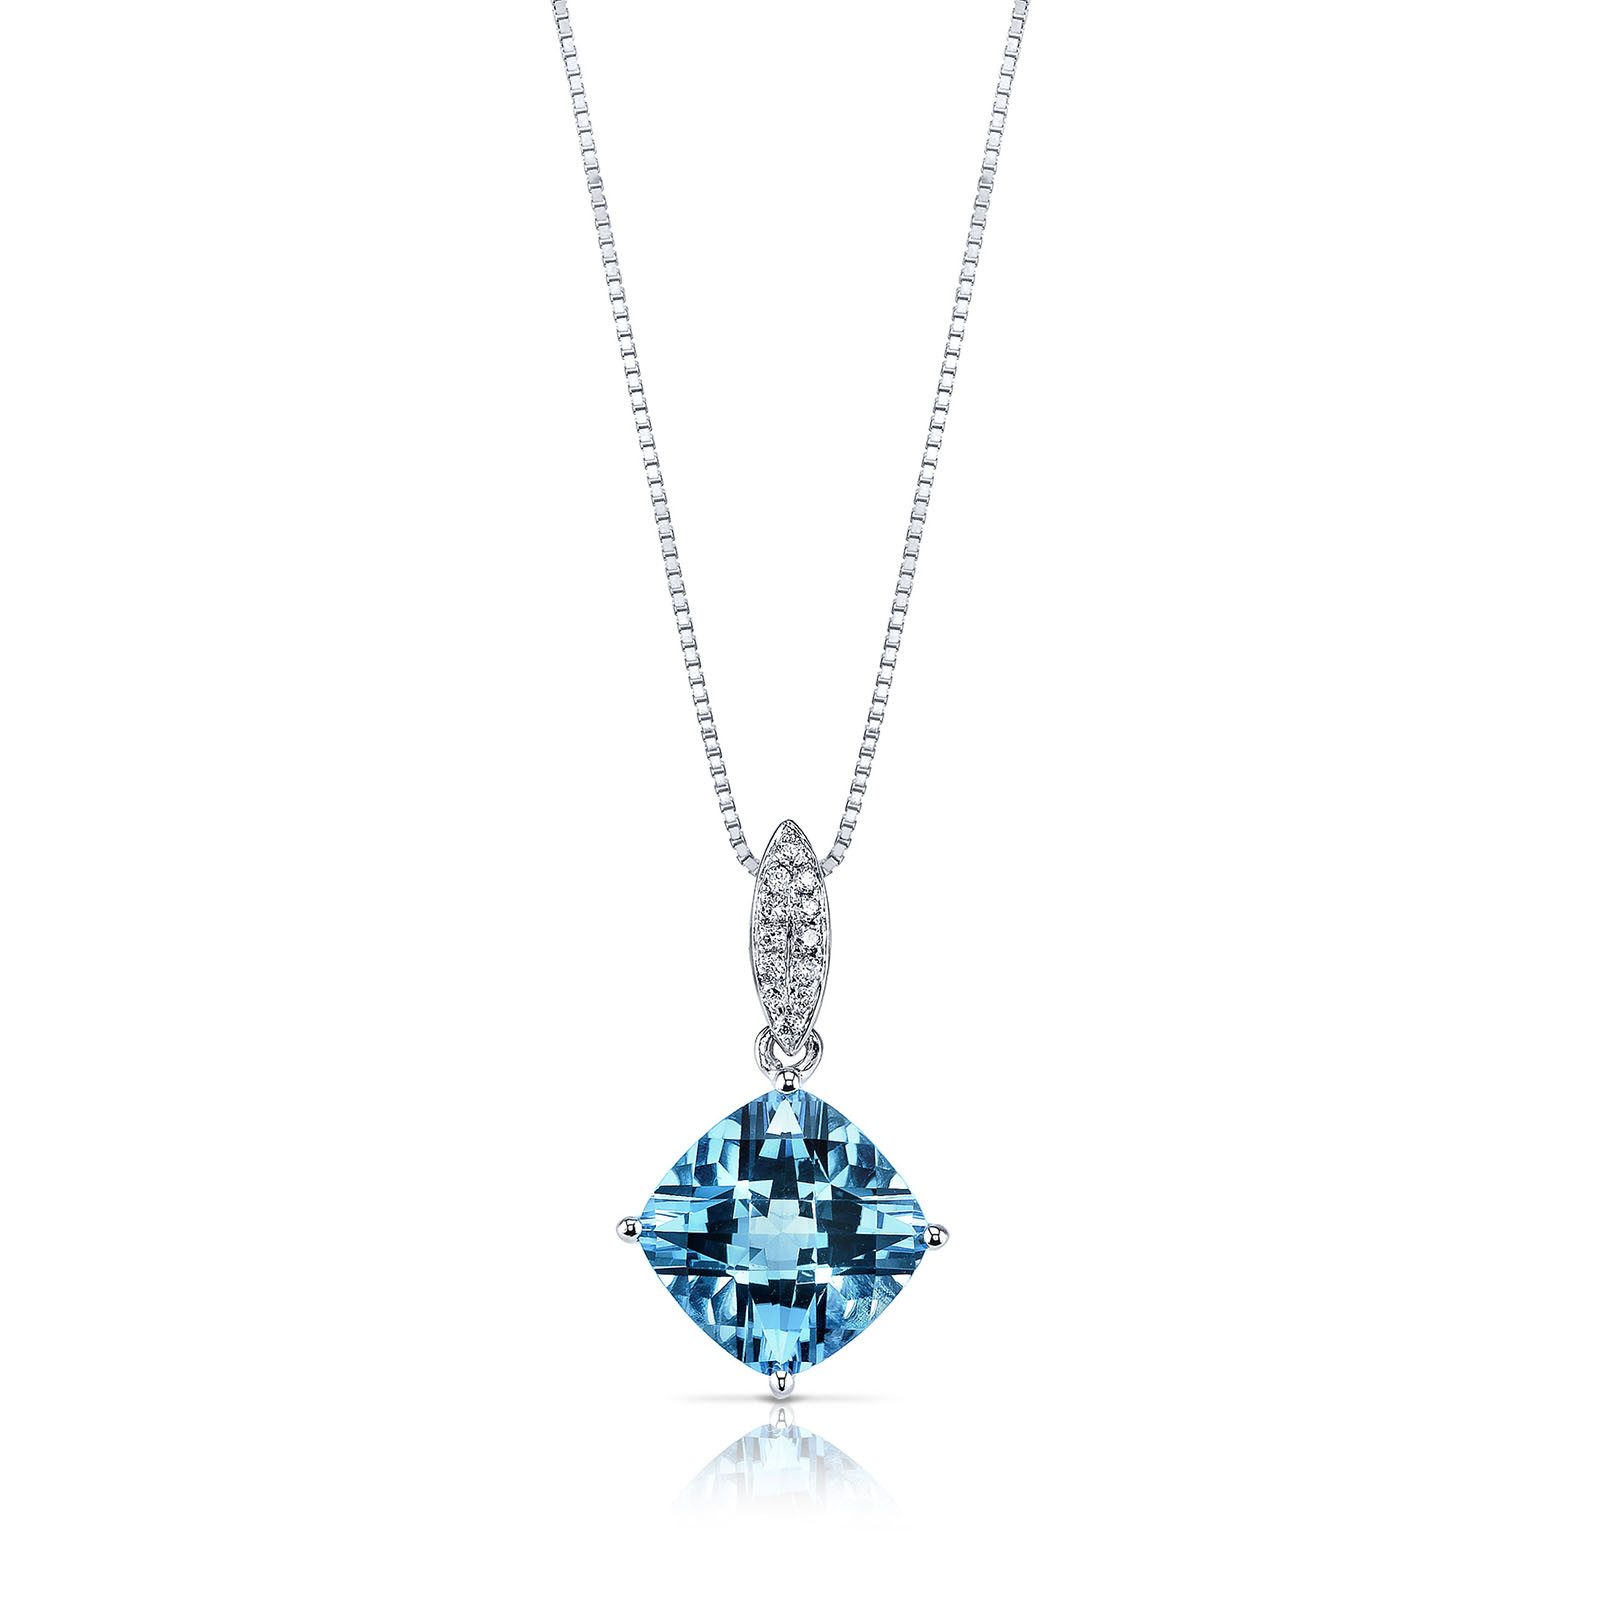 Cushion Cut Swiss Blue Topaz Diamond 9ct White Gold Pendant Necklace With Silver Chain